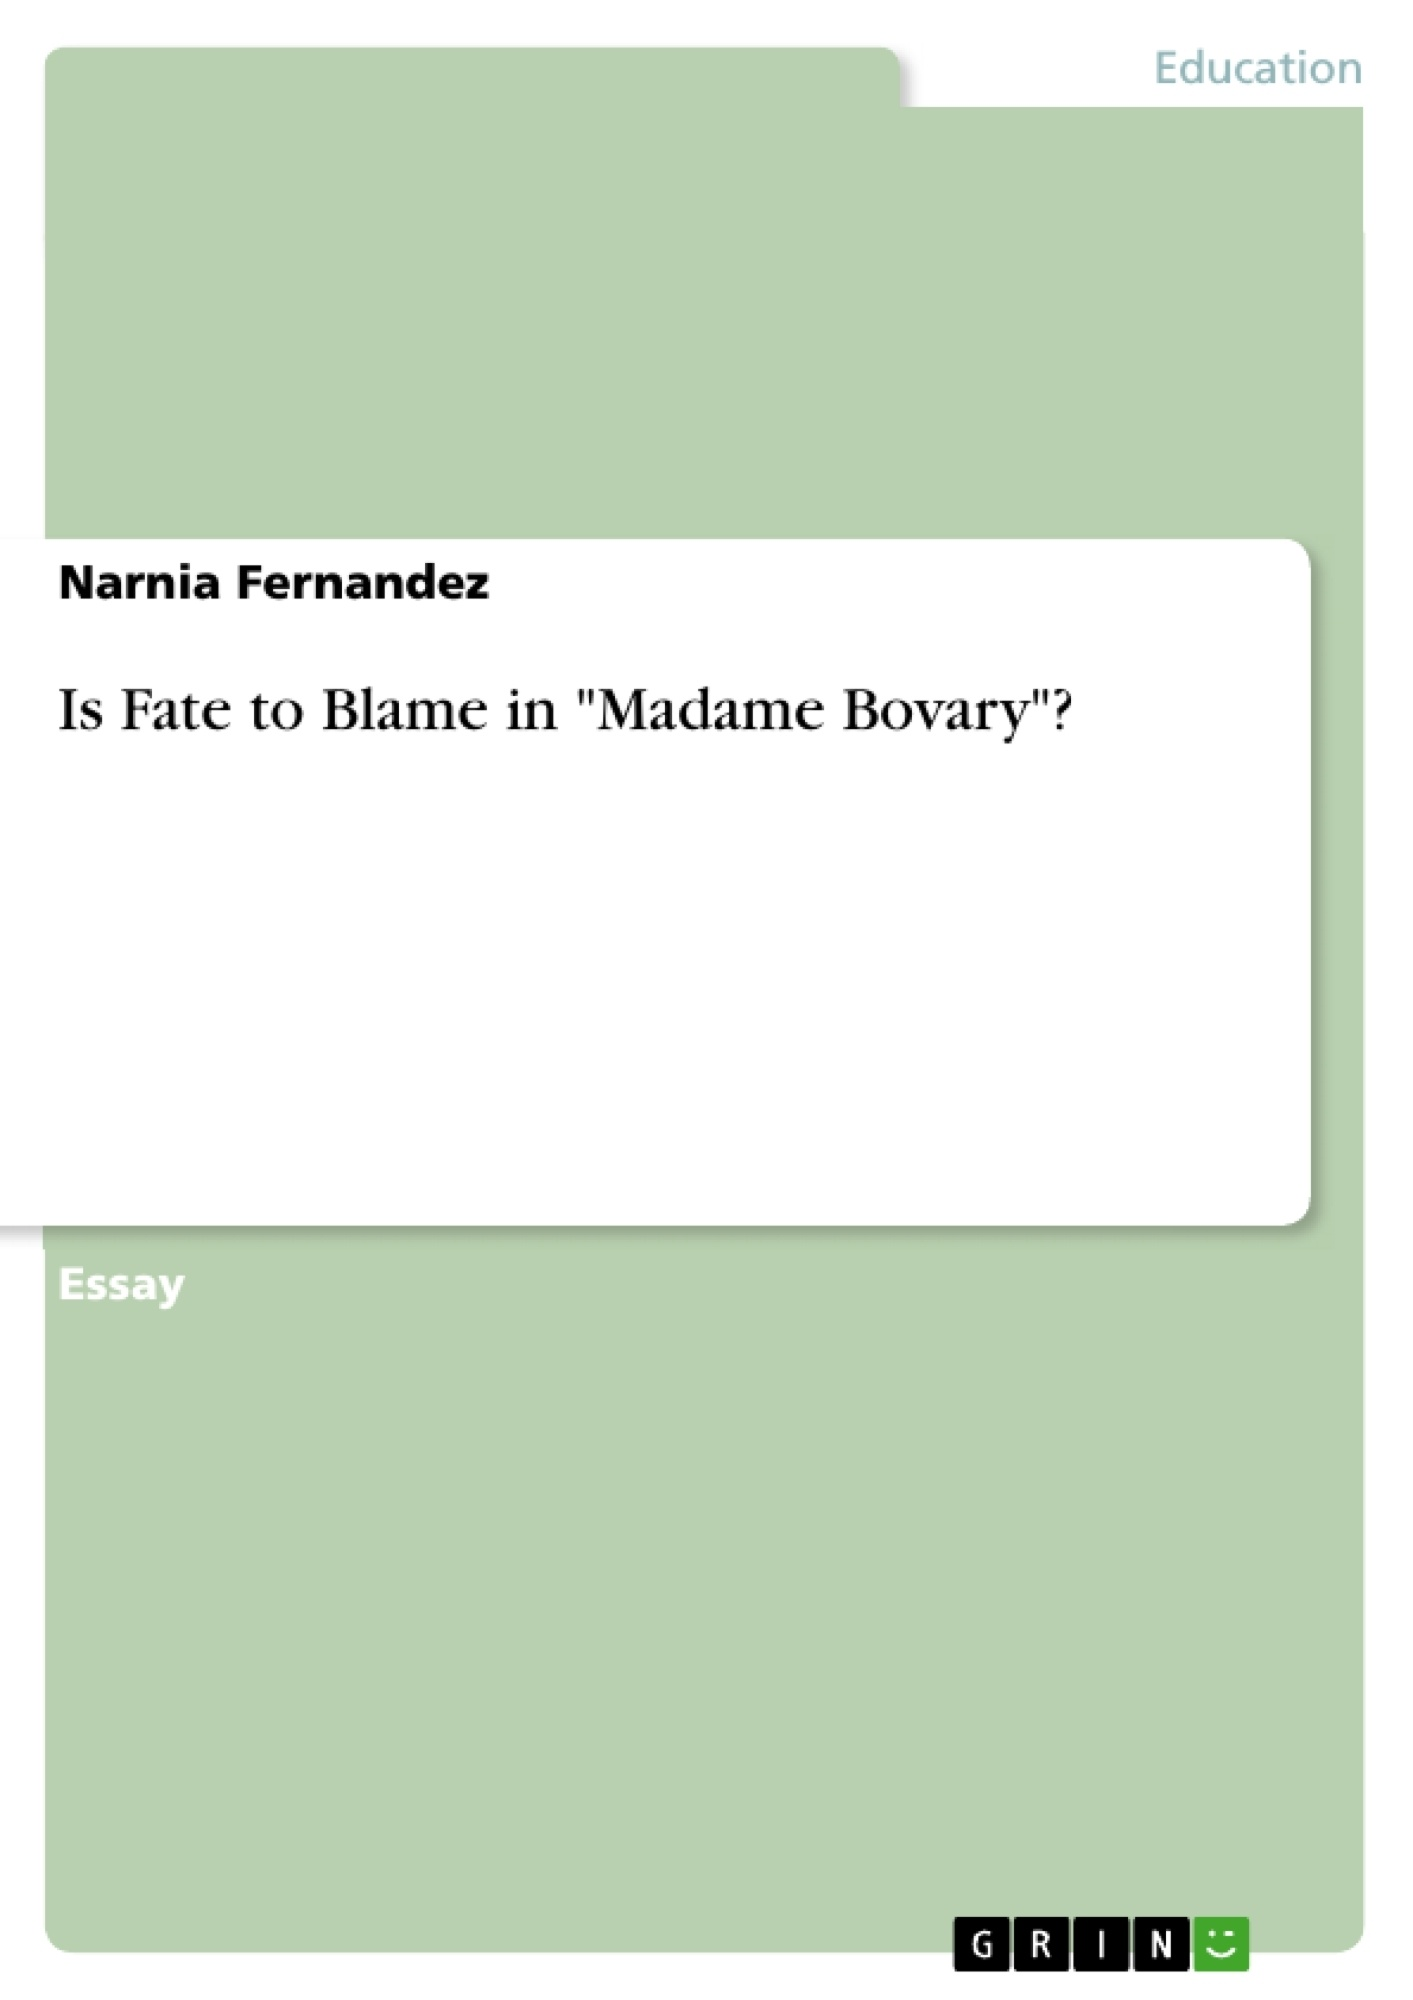 Kate Chopins The Awakening and Gustave Flauberts Madame Bovary in comparison